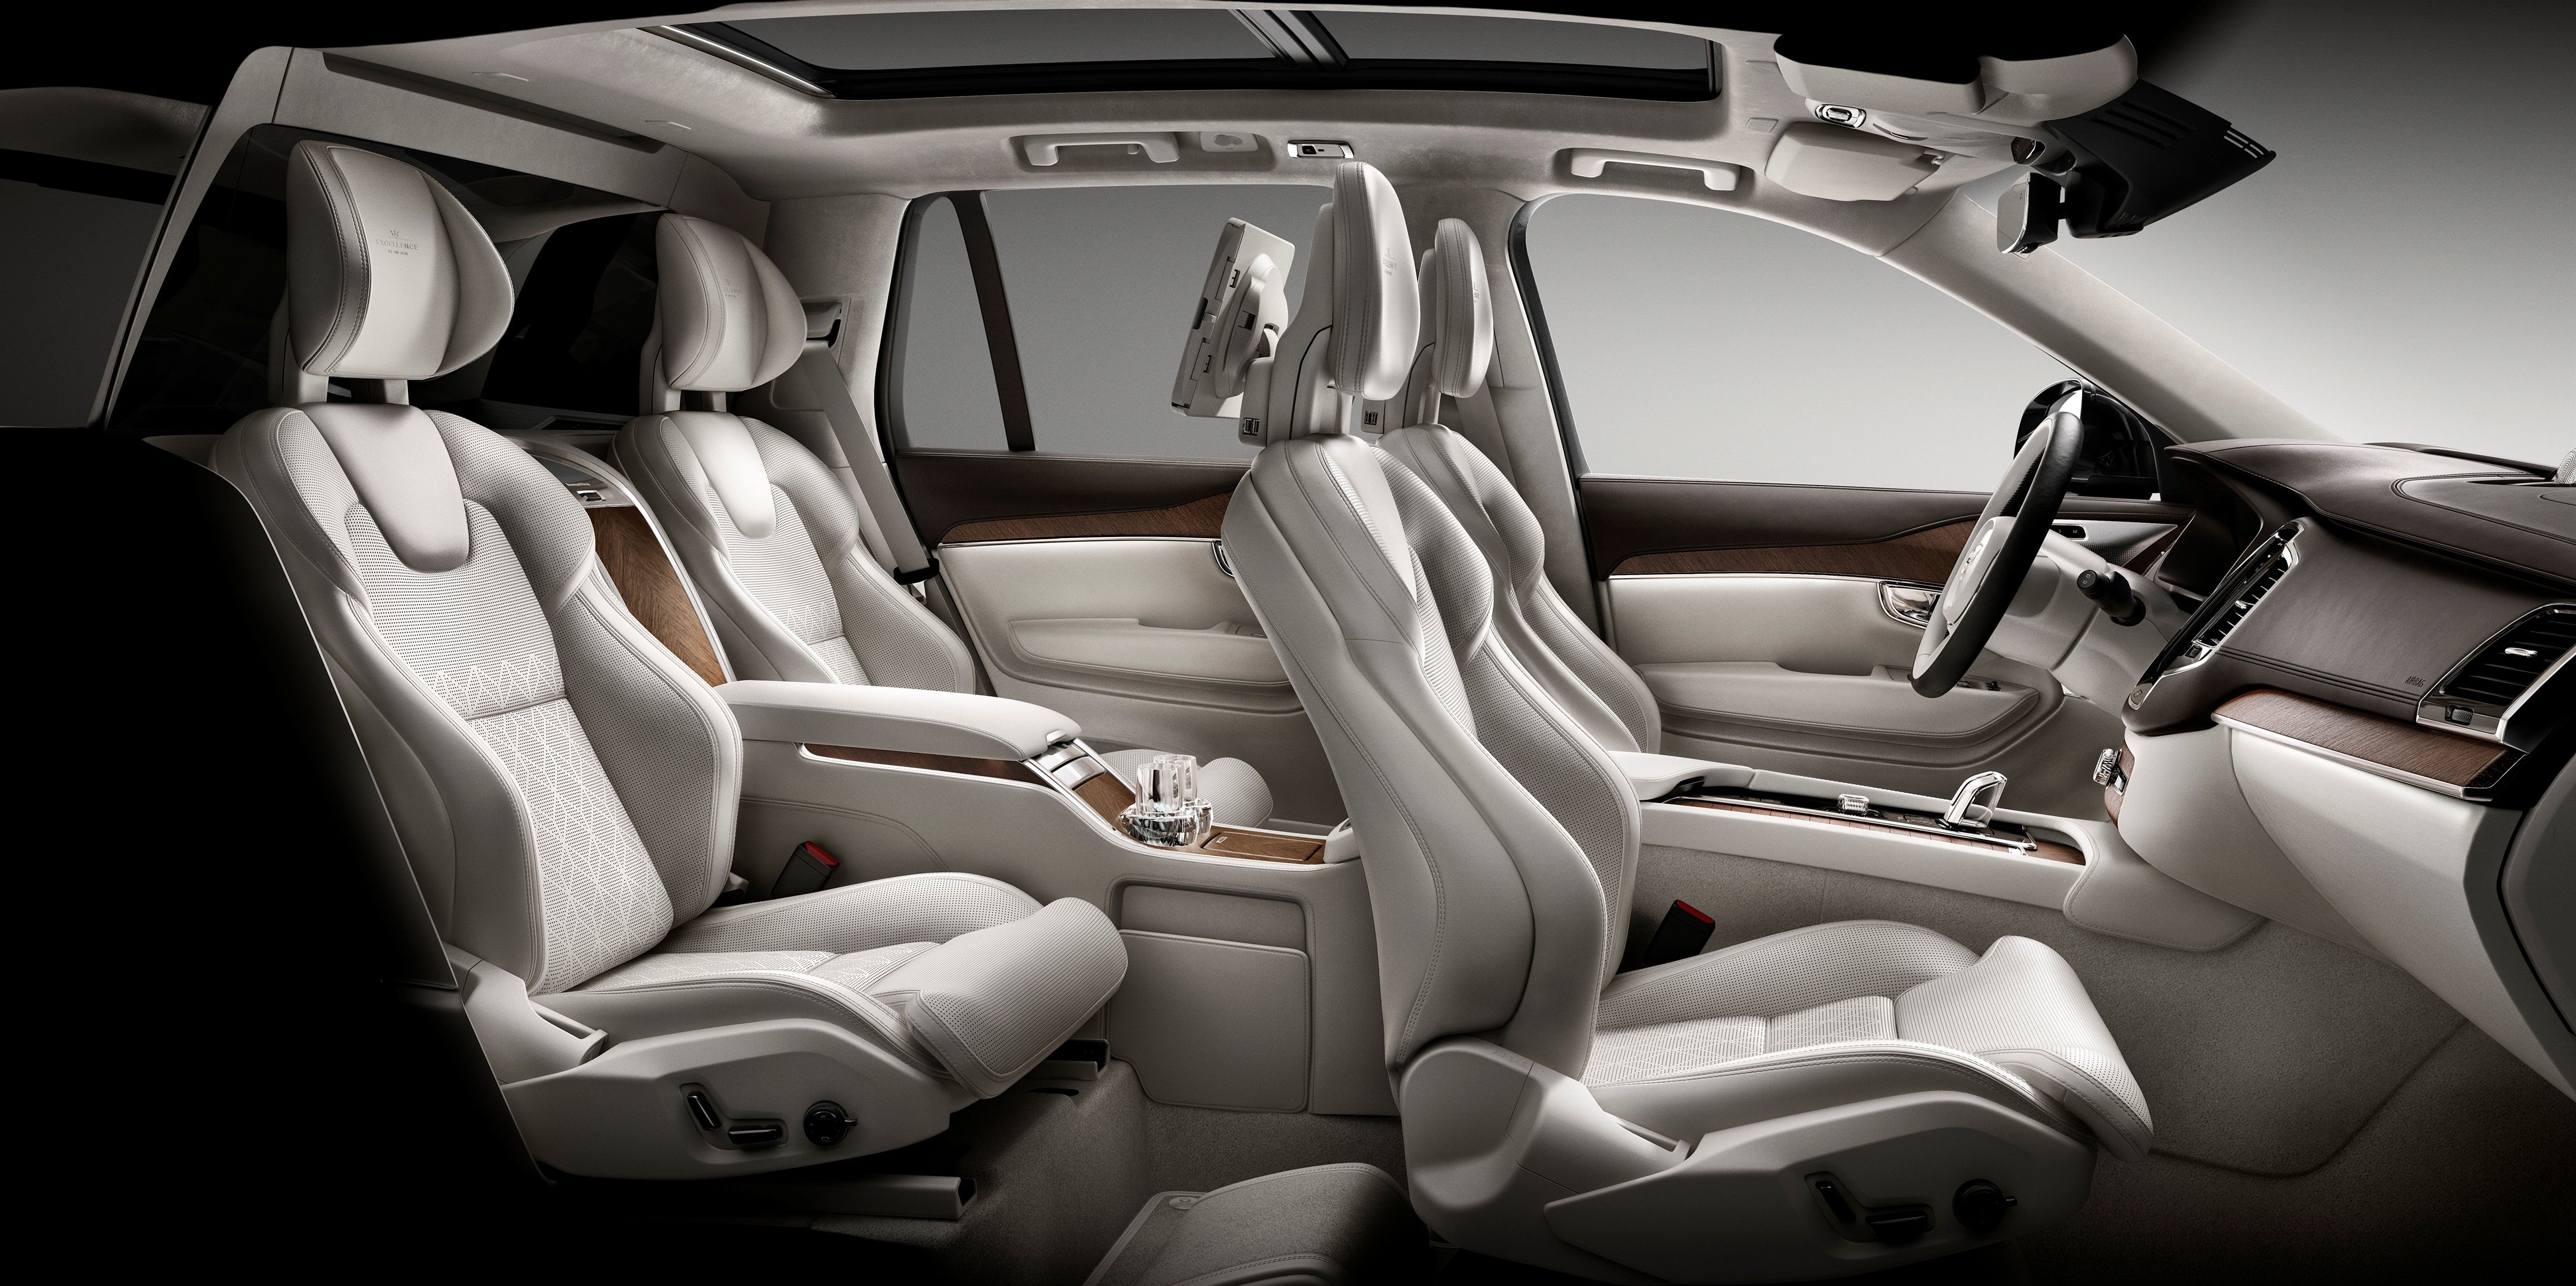 Volvo S New Luxury Suv Will Use Crystal Champagne Glasses To Take On Range Rover Volvo Xc90 Volvo Best Luxury Cars